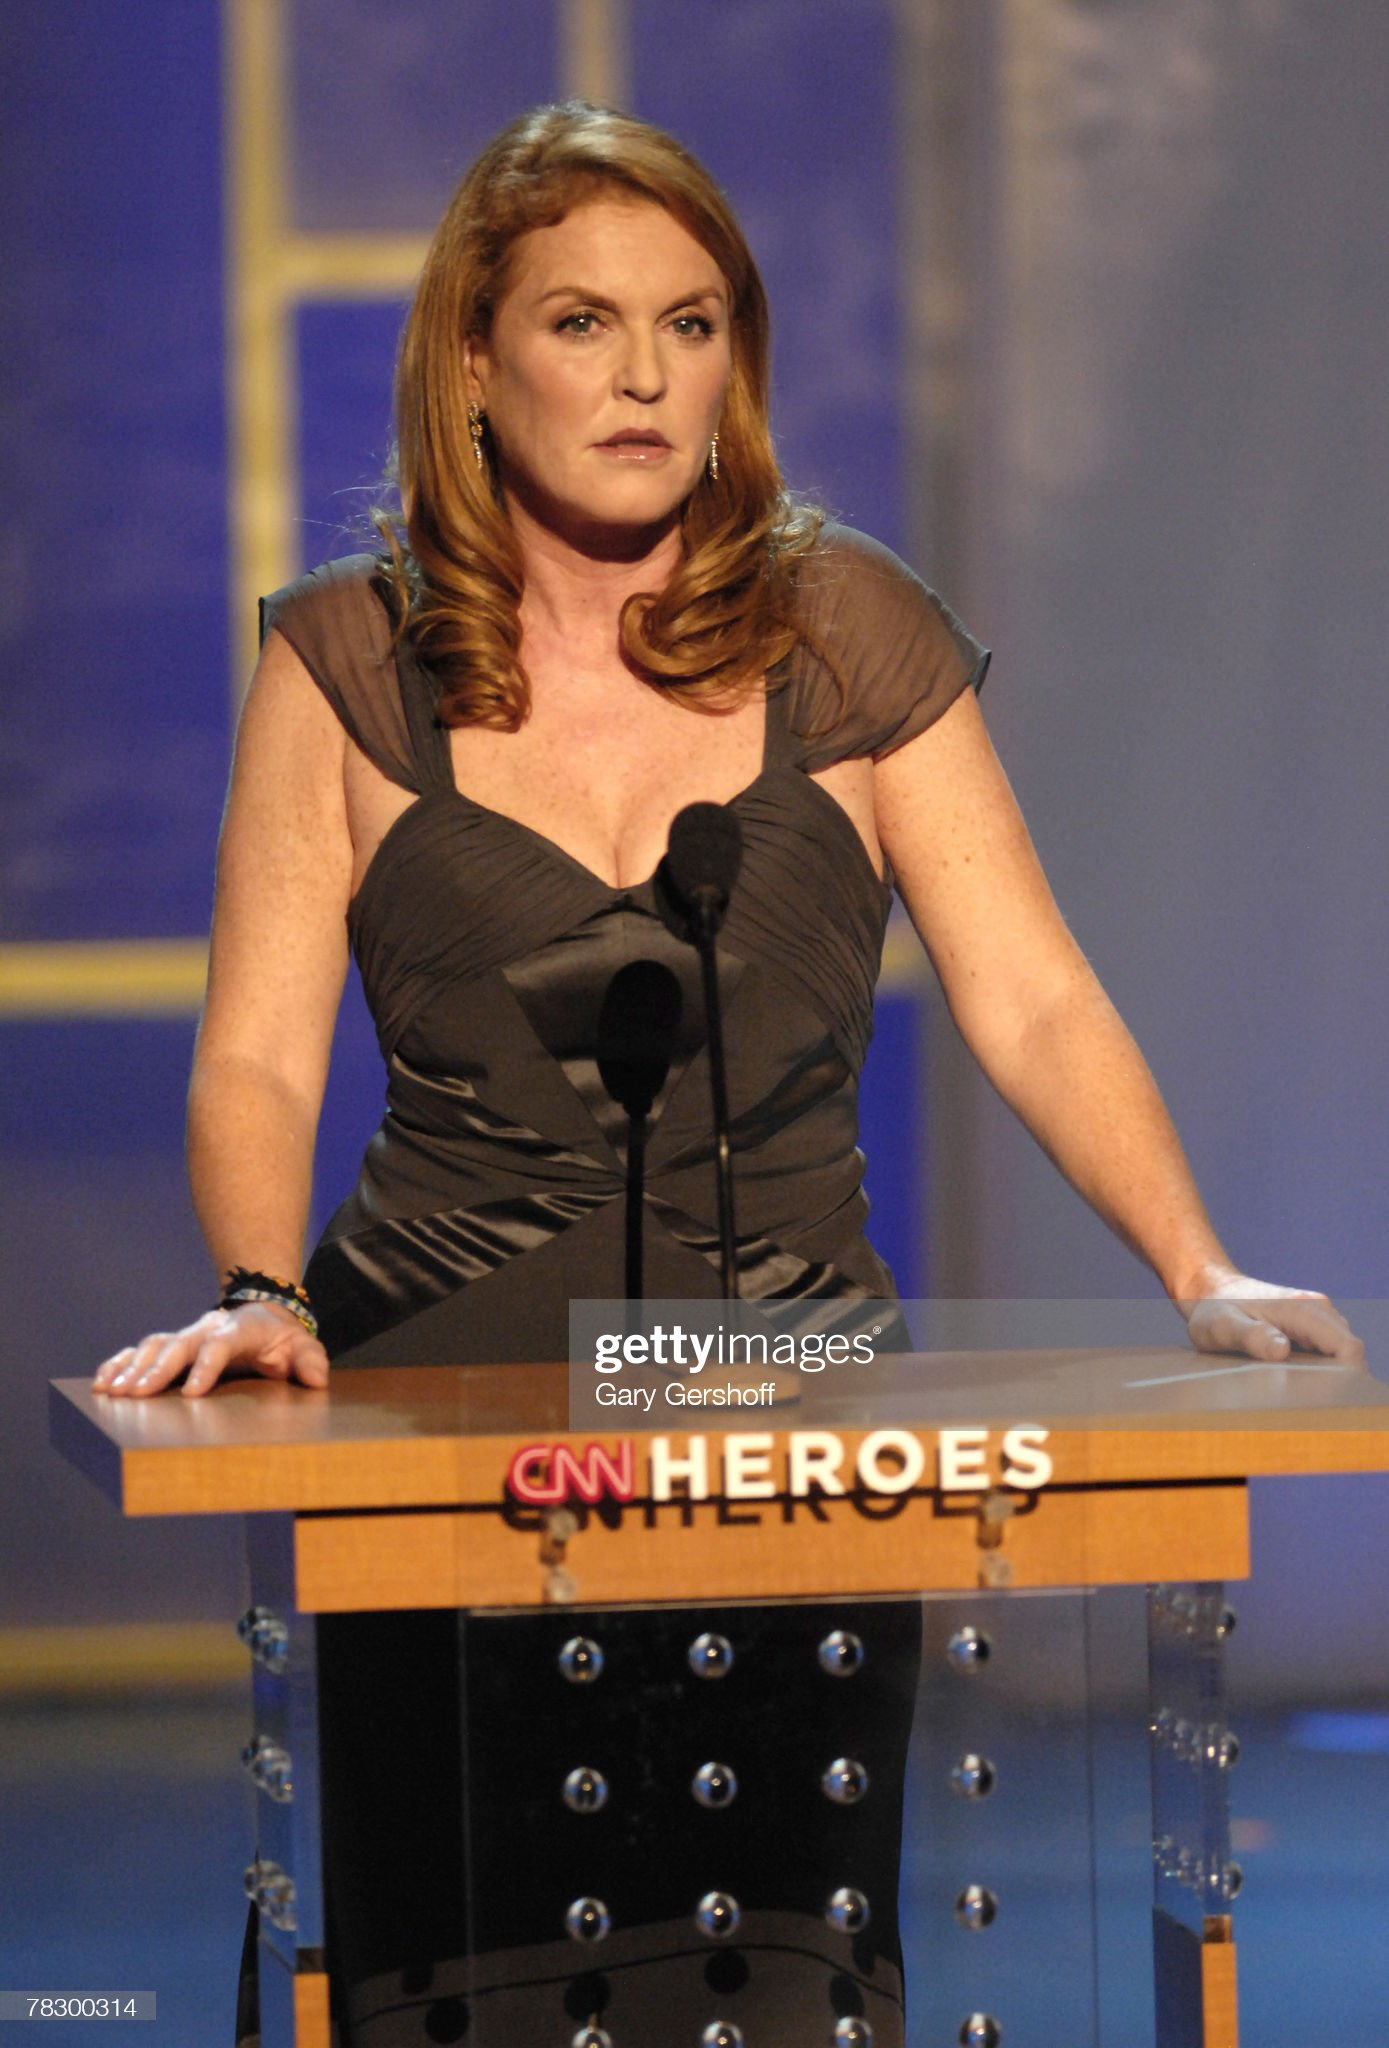 CNN Heroes: An All-Star Tribute, a Live Global Broadcast Honoring Everyday Heroes - Show : News Photo